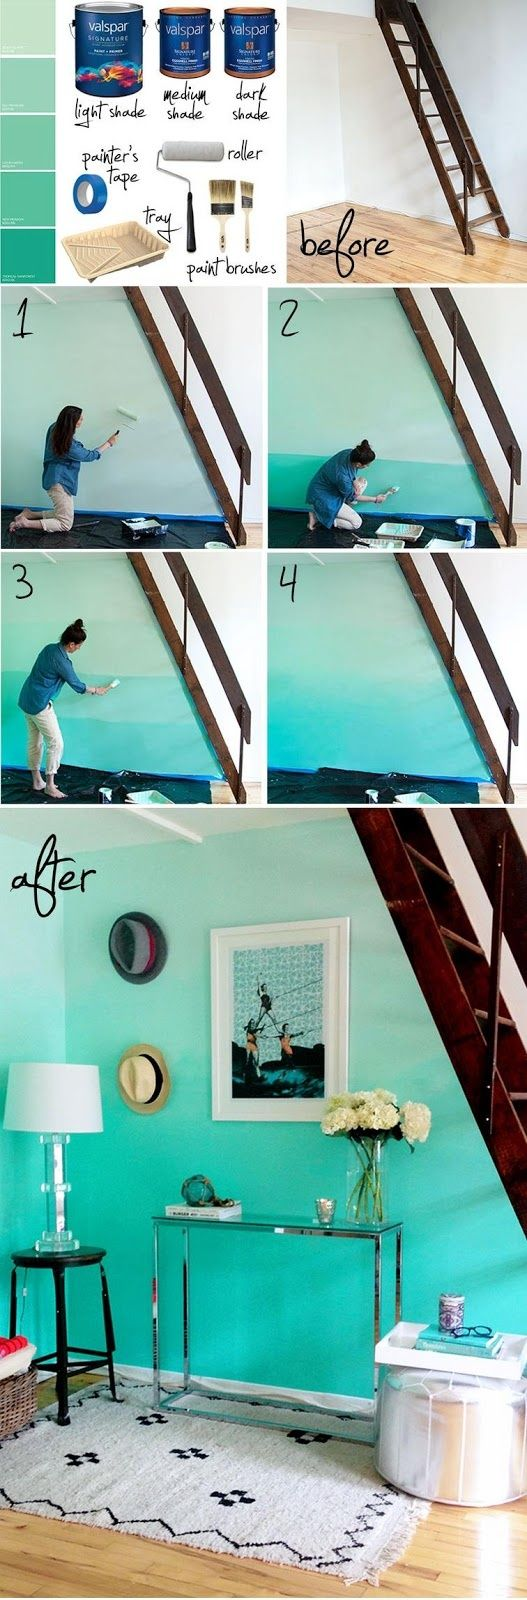 Top 10 home decor diy ideas painted walls doors and paint amipublicfo Gallery